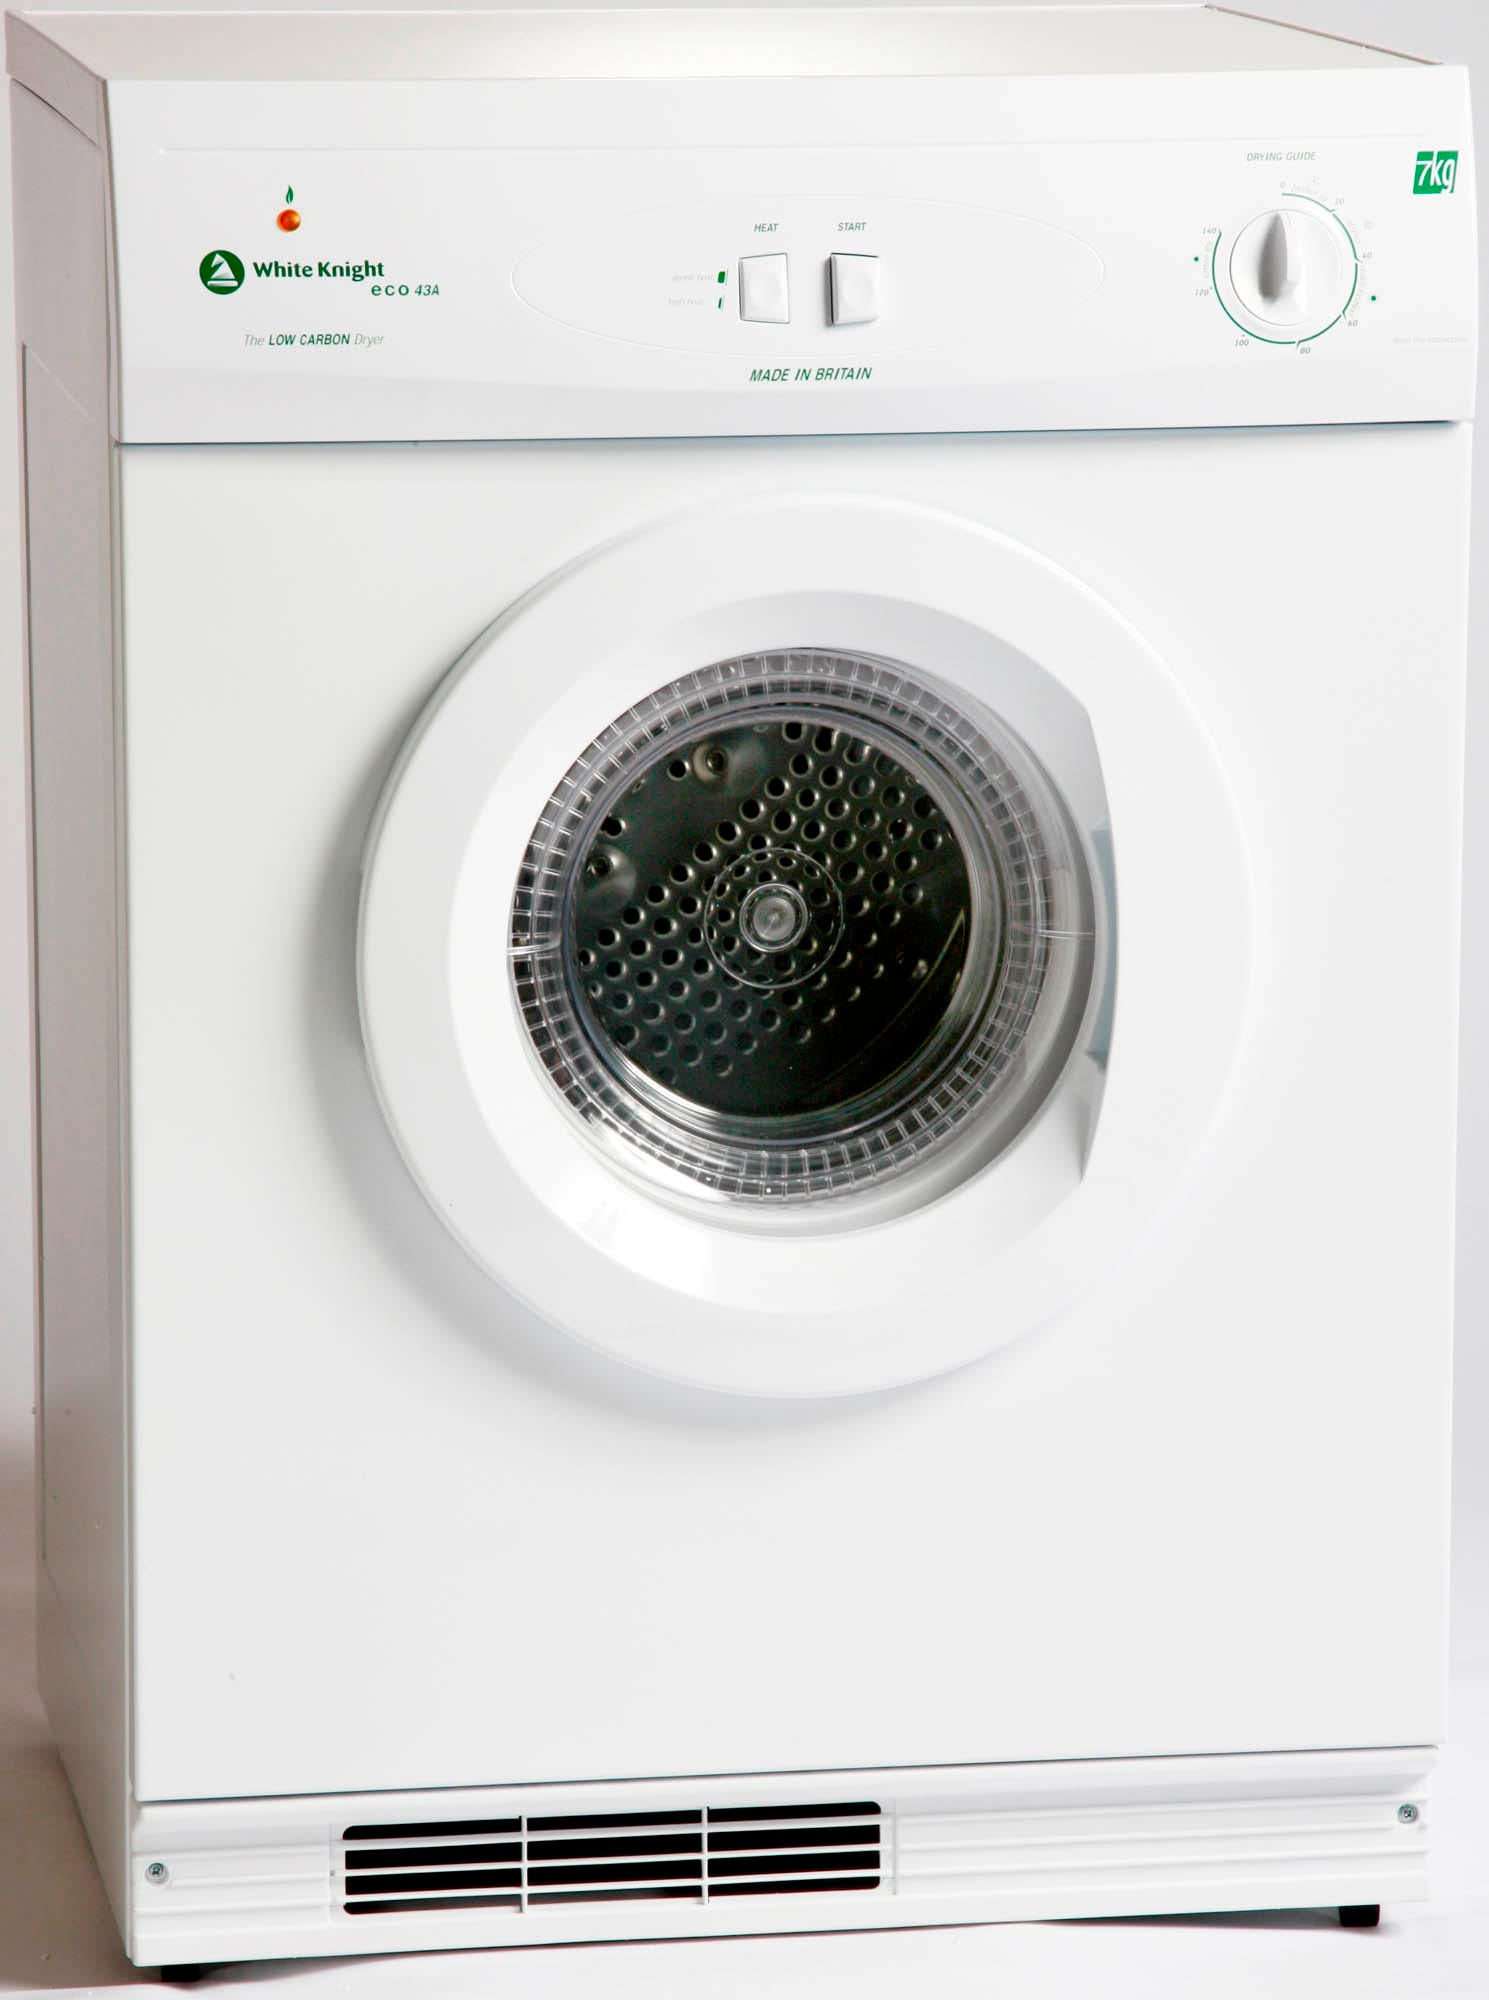 Compare prices for White Knight 7kg Reverse Action Eco Gas Dryer - White